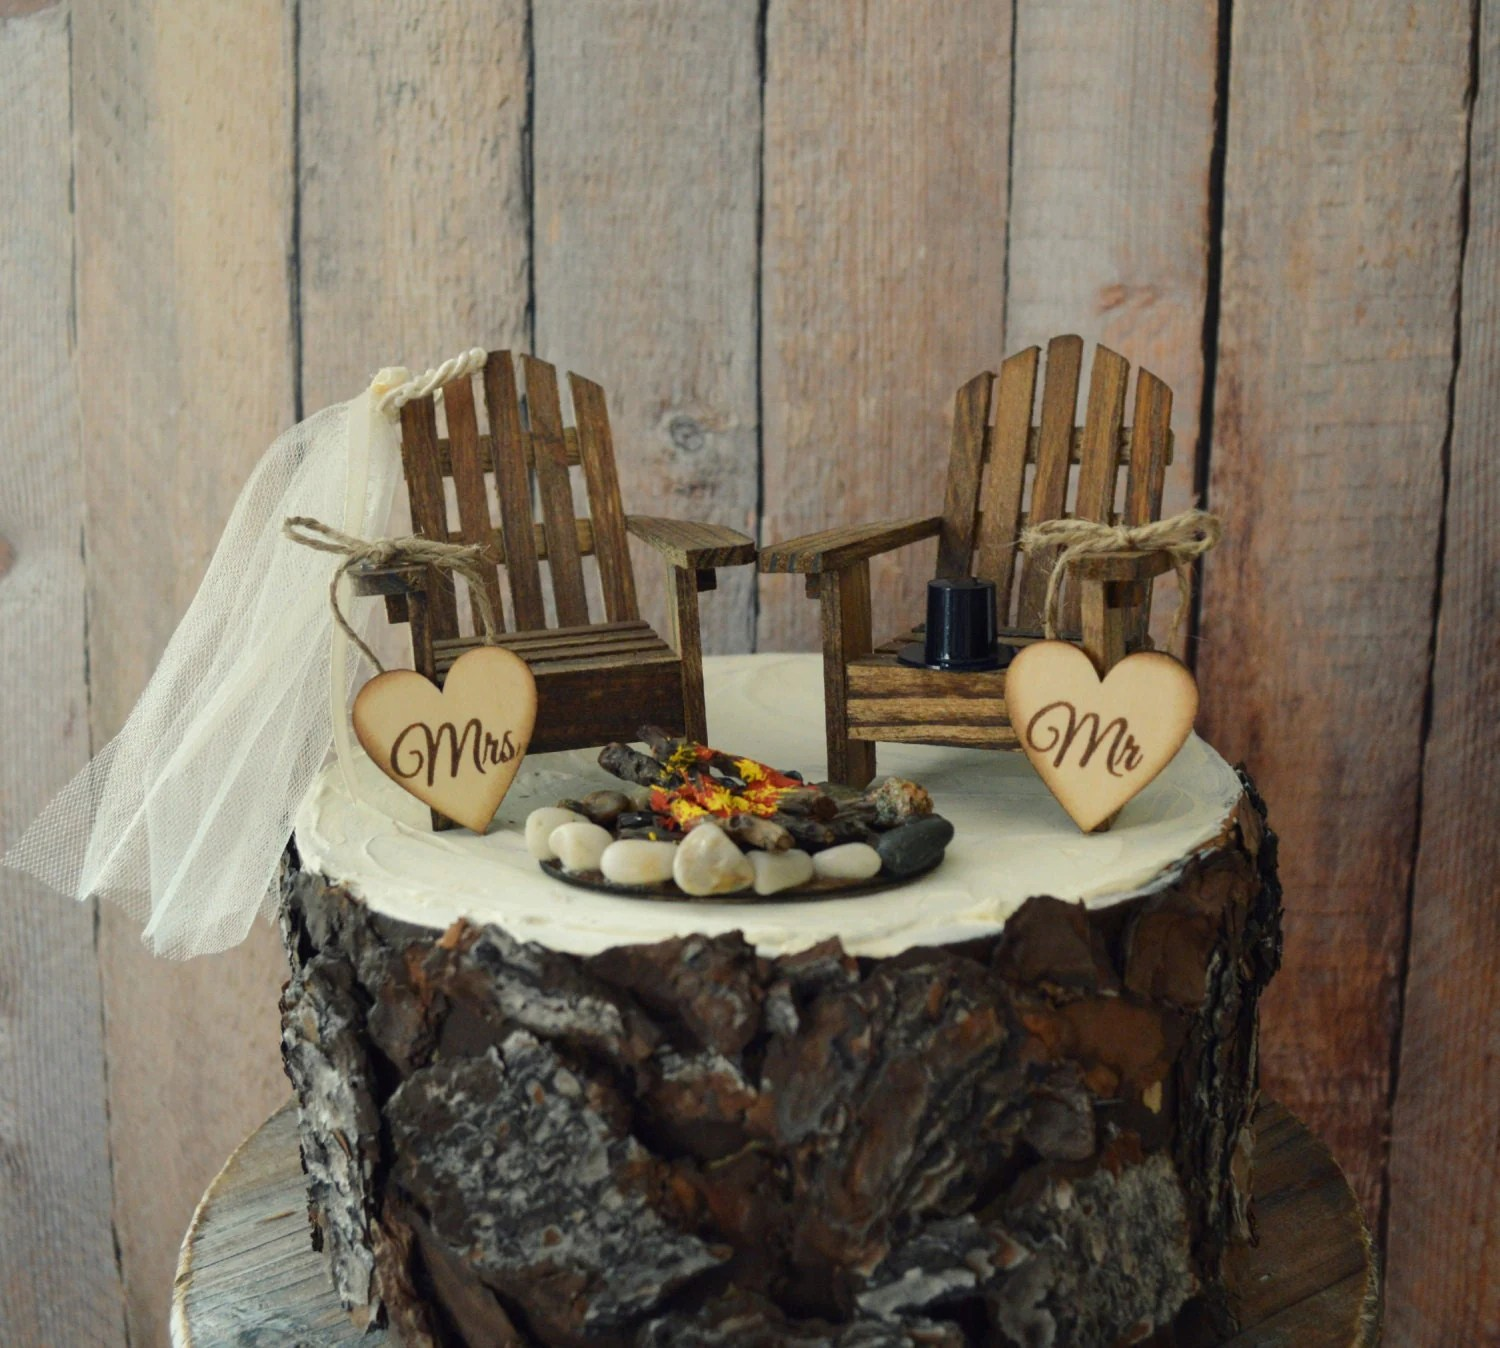 adirondack chair cake topper outdoor cushions with ties country wedding camping fishing